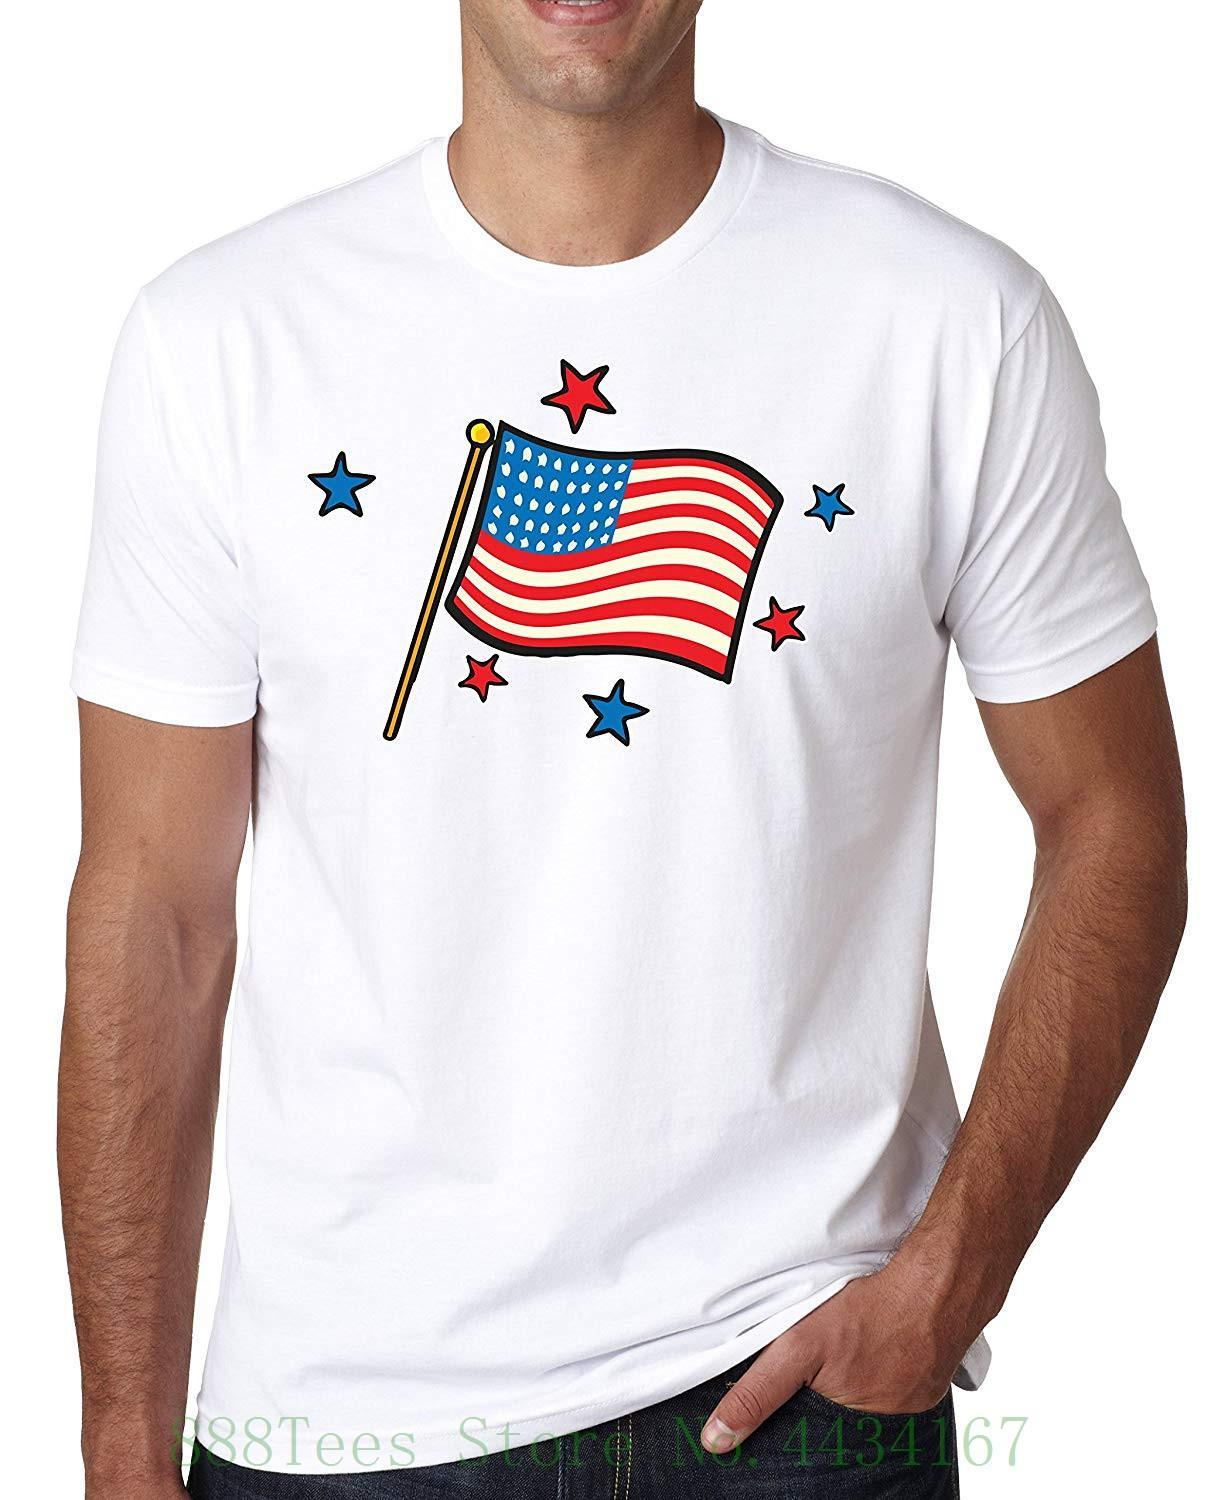 264661d9d Shut Up Usa Flag Stars Old School Tattoo Collection Vintage Colors Men's T  shirt Tops Cool T Shirt